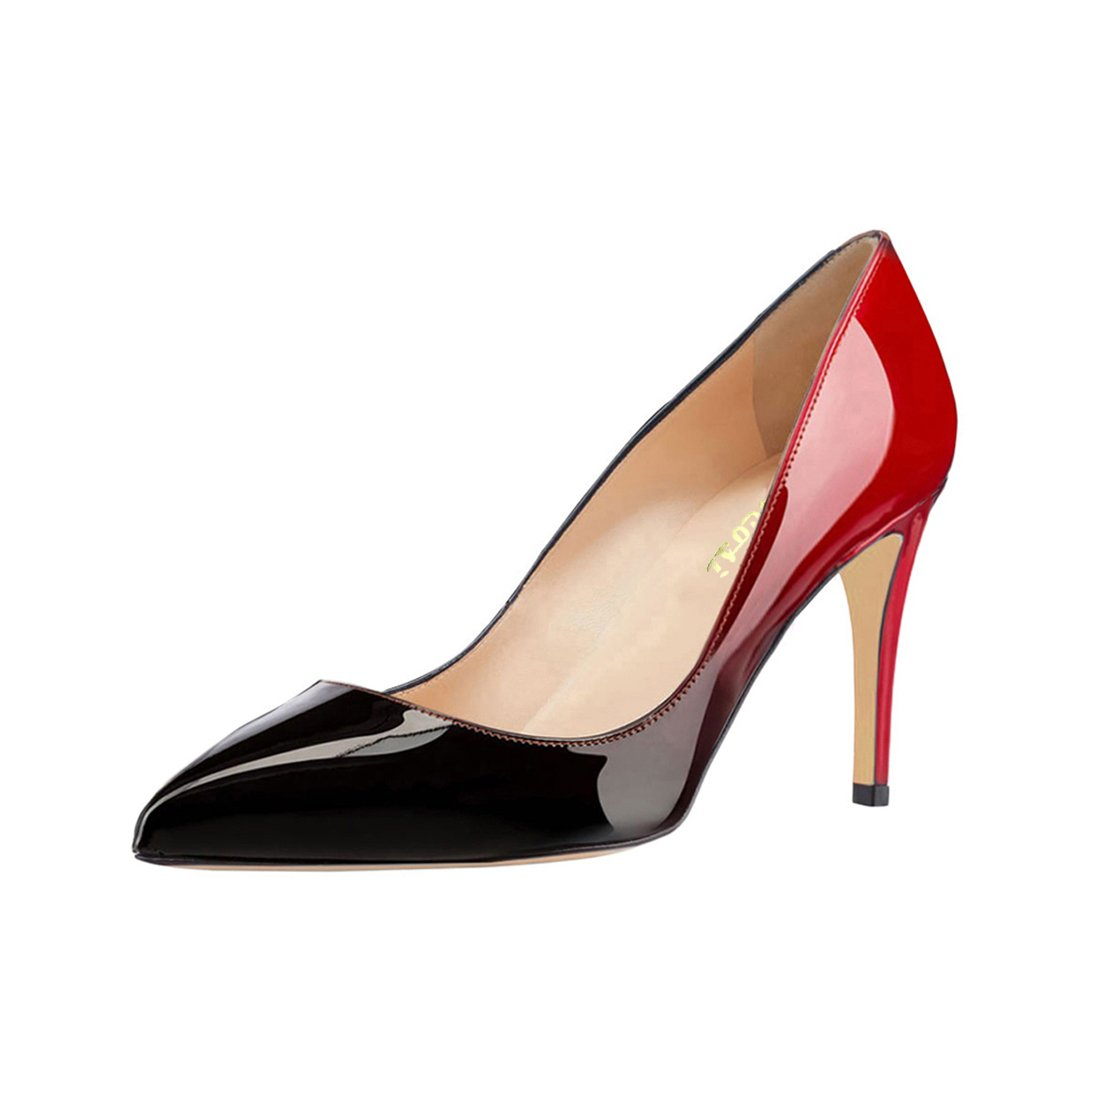 VOCOSI Women's Basic Simple High Heels Slip On Closed Pointed Toe Ladies Dress Pumps B073JFSH61 9 B(M) US|Red-black(patent)